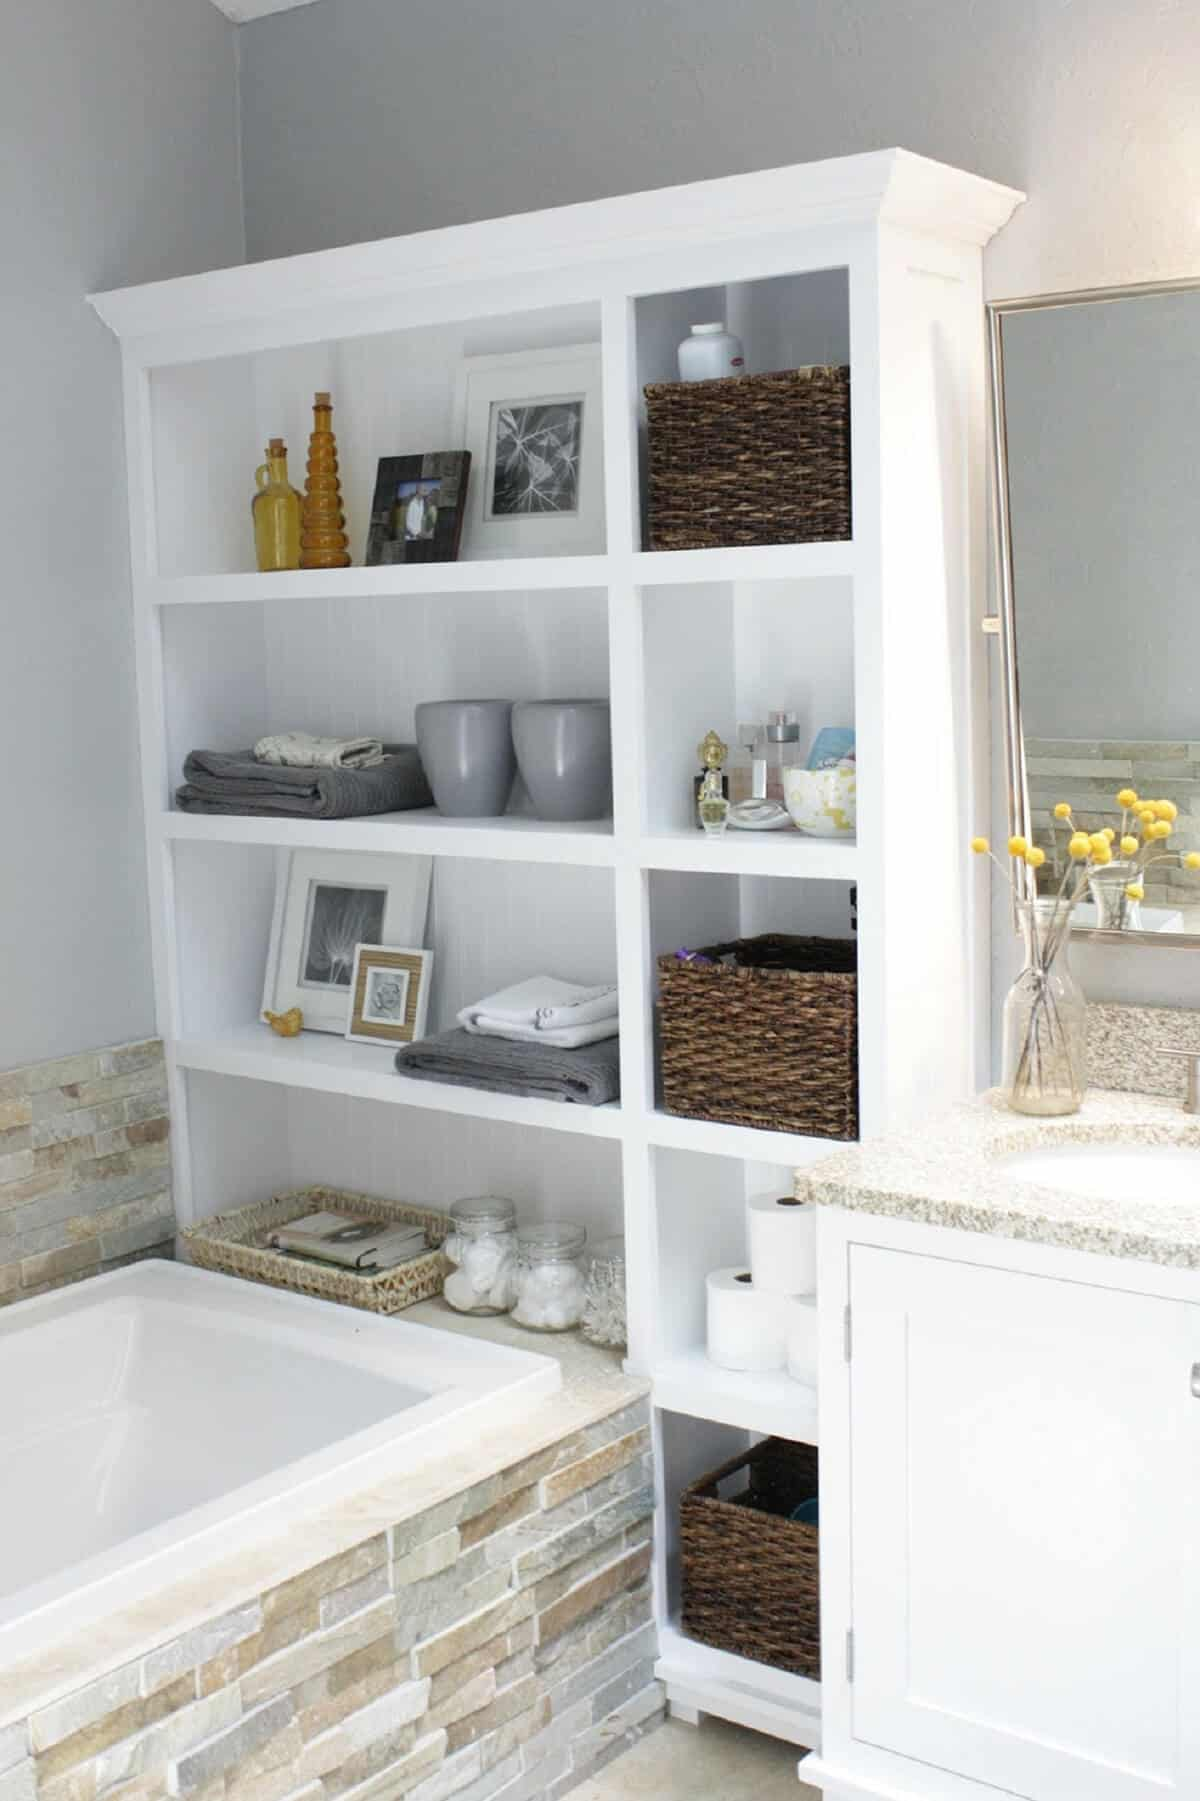 Merveilleux 20 Smart Bathroom Storage Ideas That Will Impress You   Homesthetics    Inspiring Ideas For Your Home.